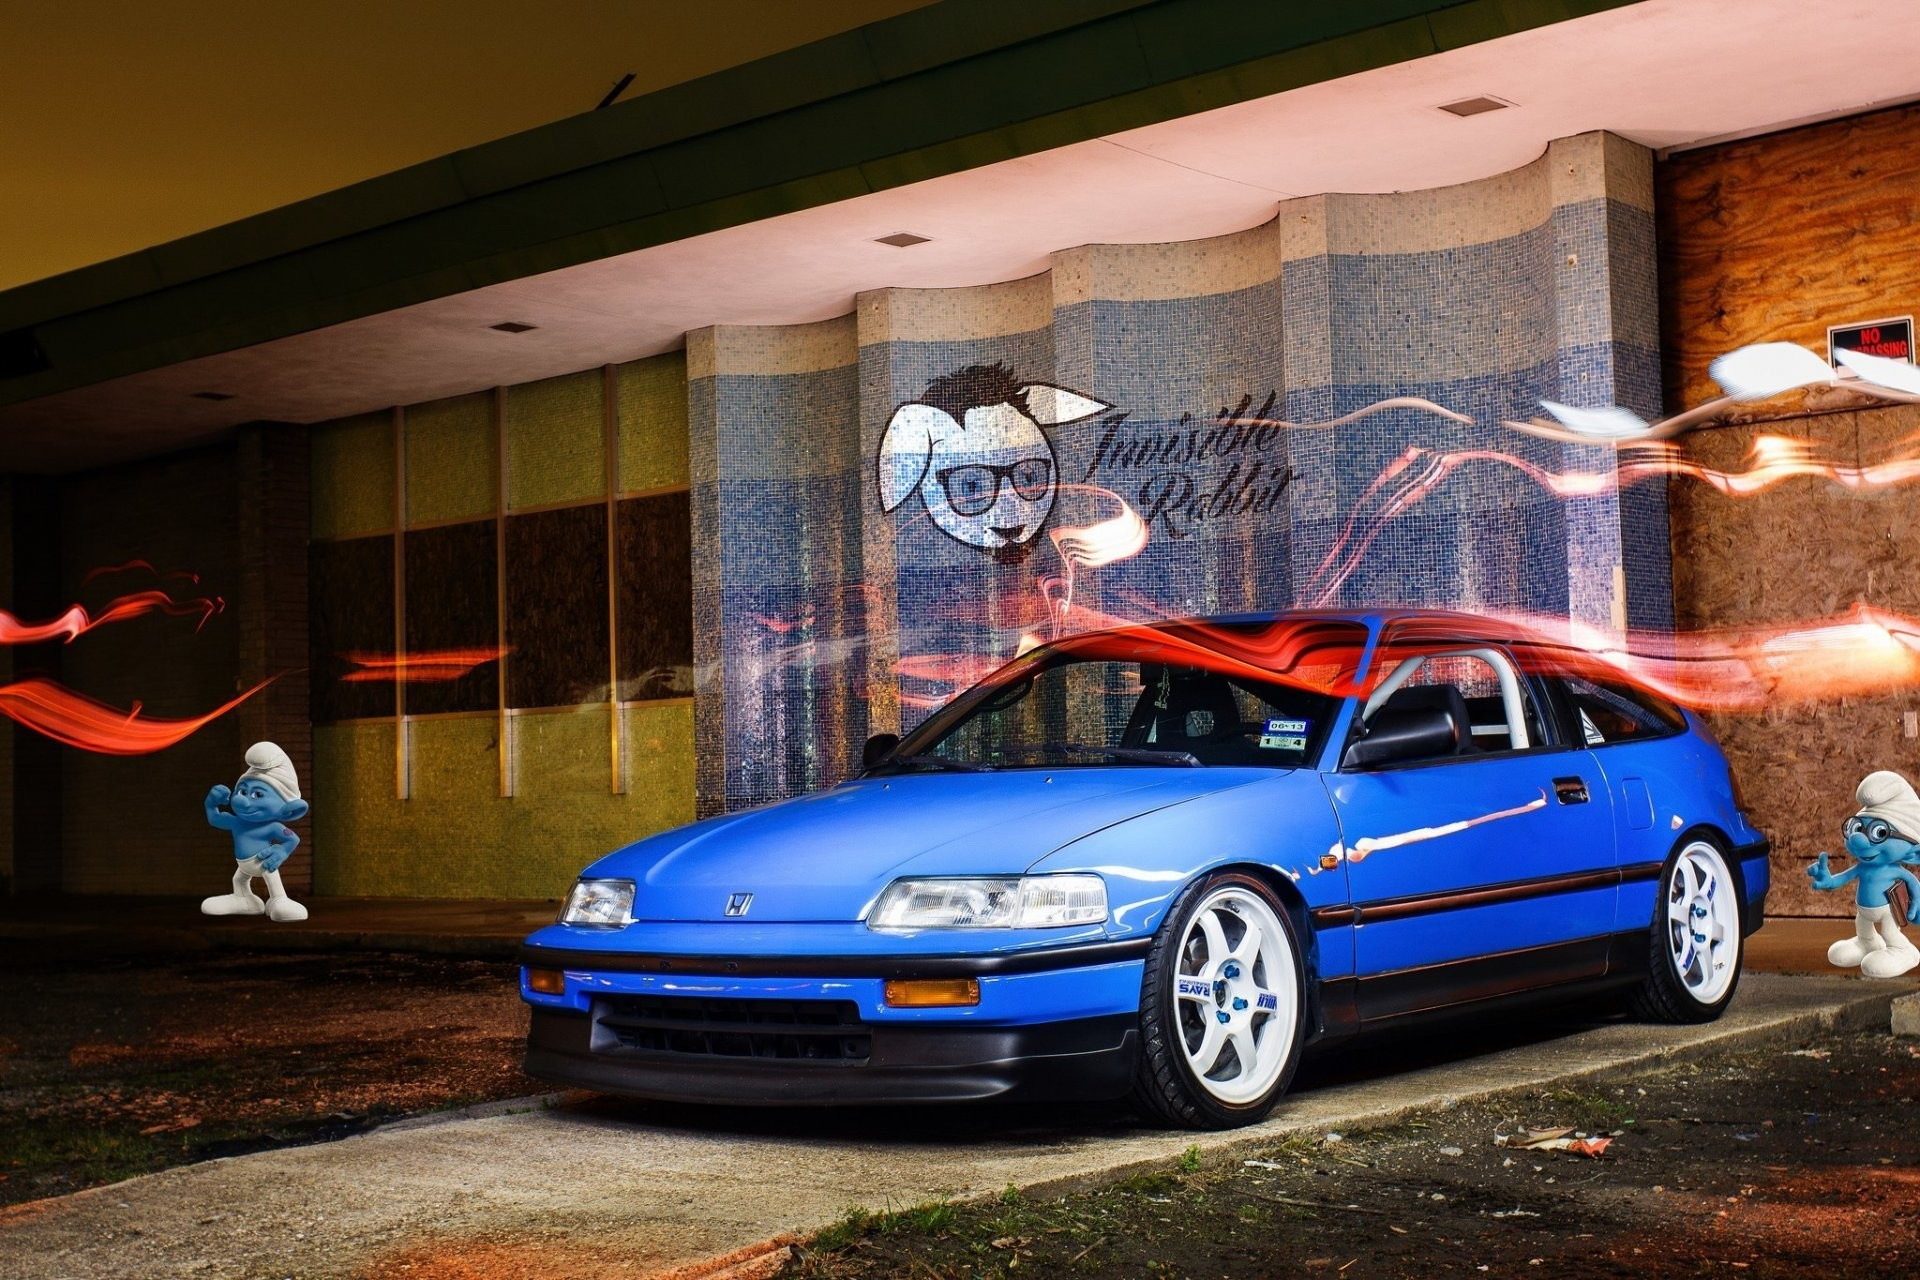 1920x1280 honda civic crx tuning sport blue jdm japan low stance coupe honda tuning